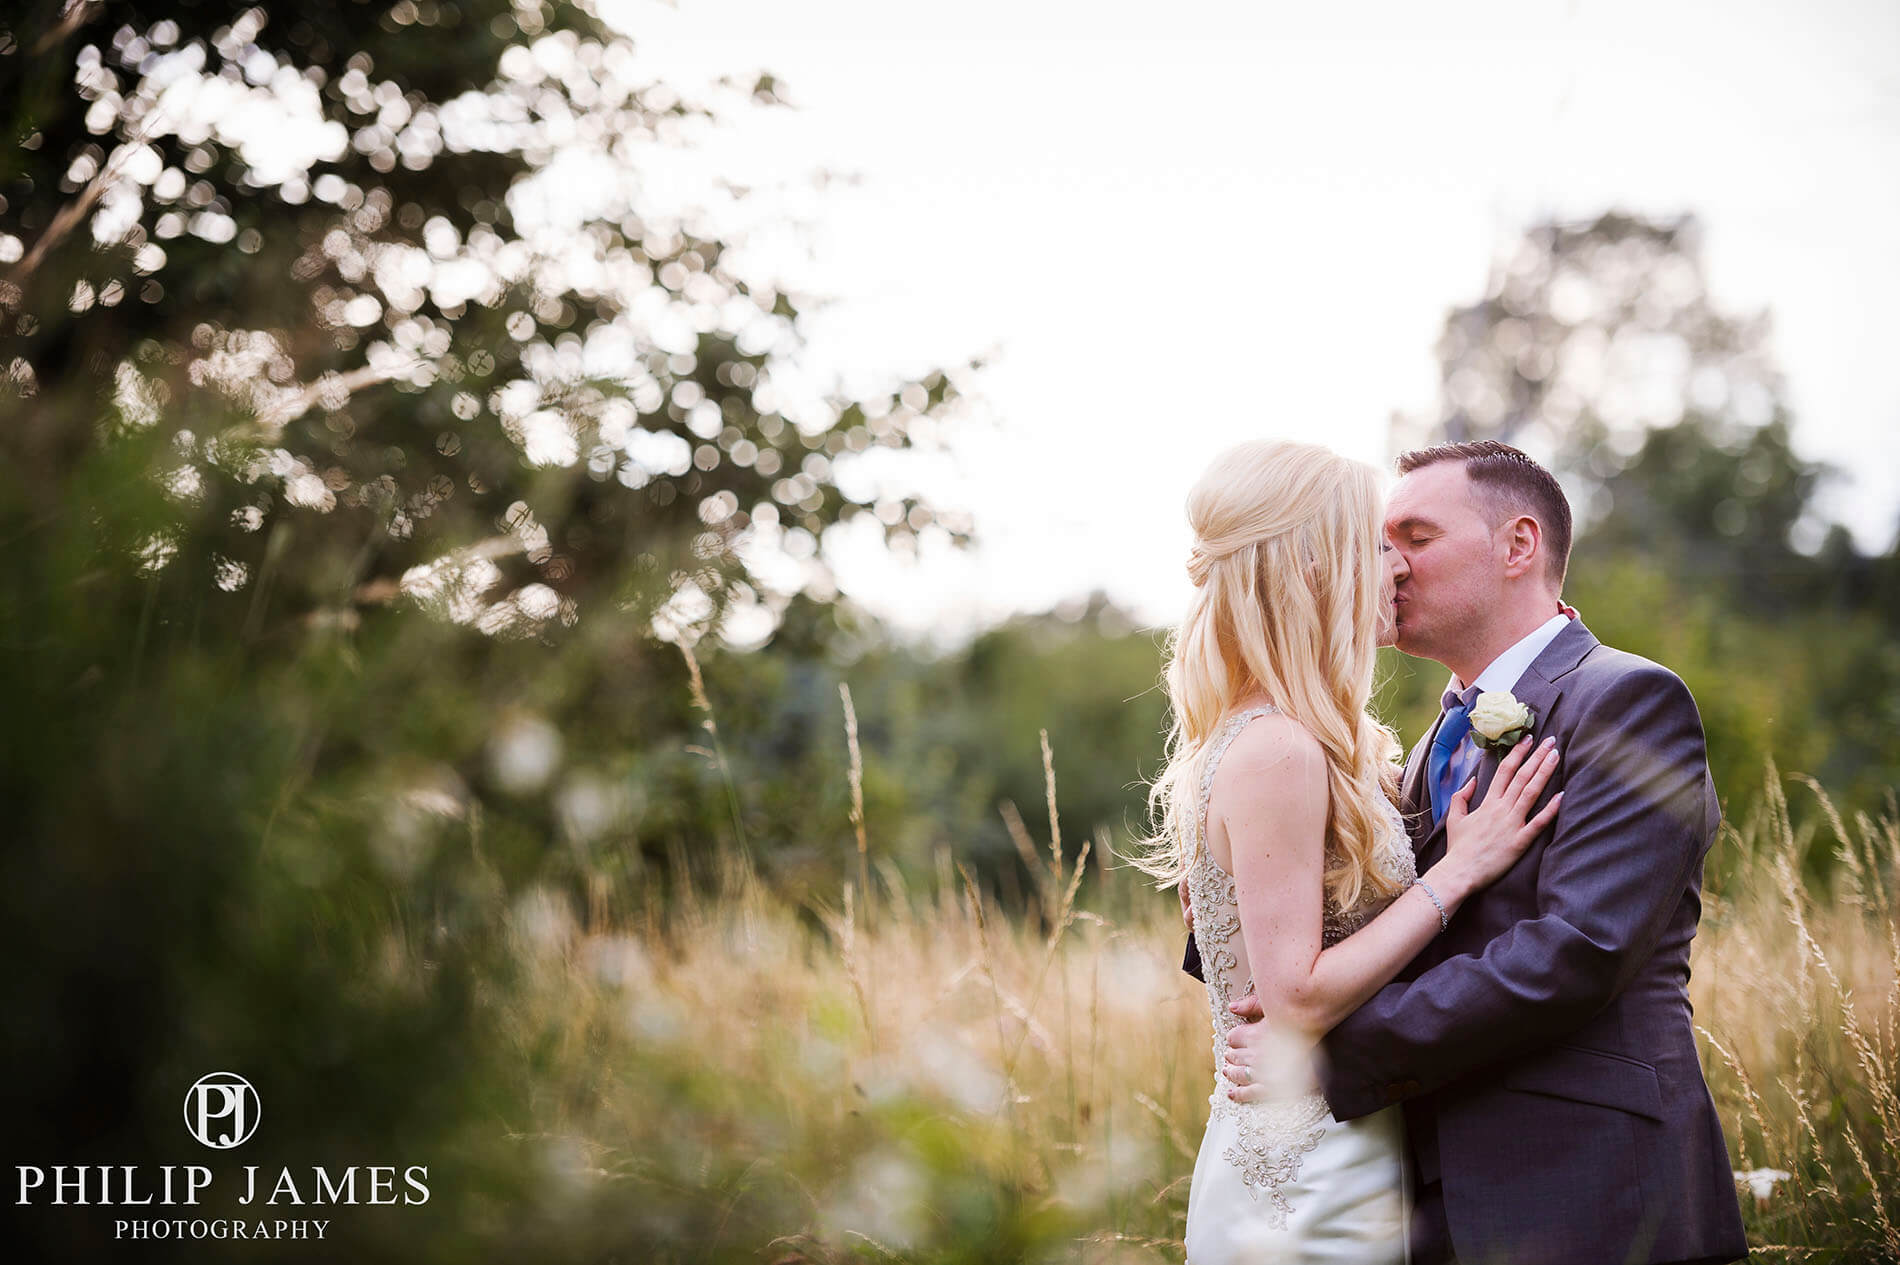 Philip James specializing in Wedding Photography Birmingham - Moments (75 of 170)